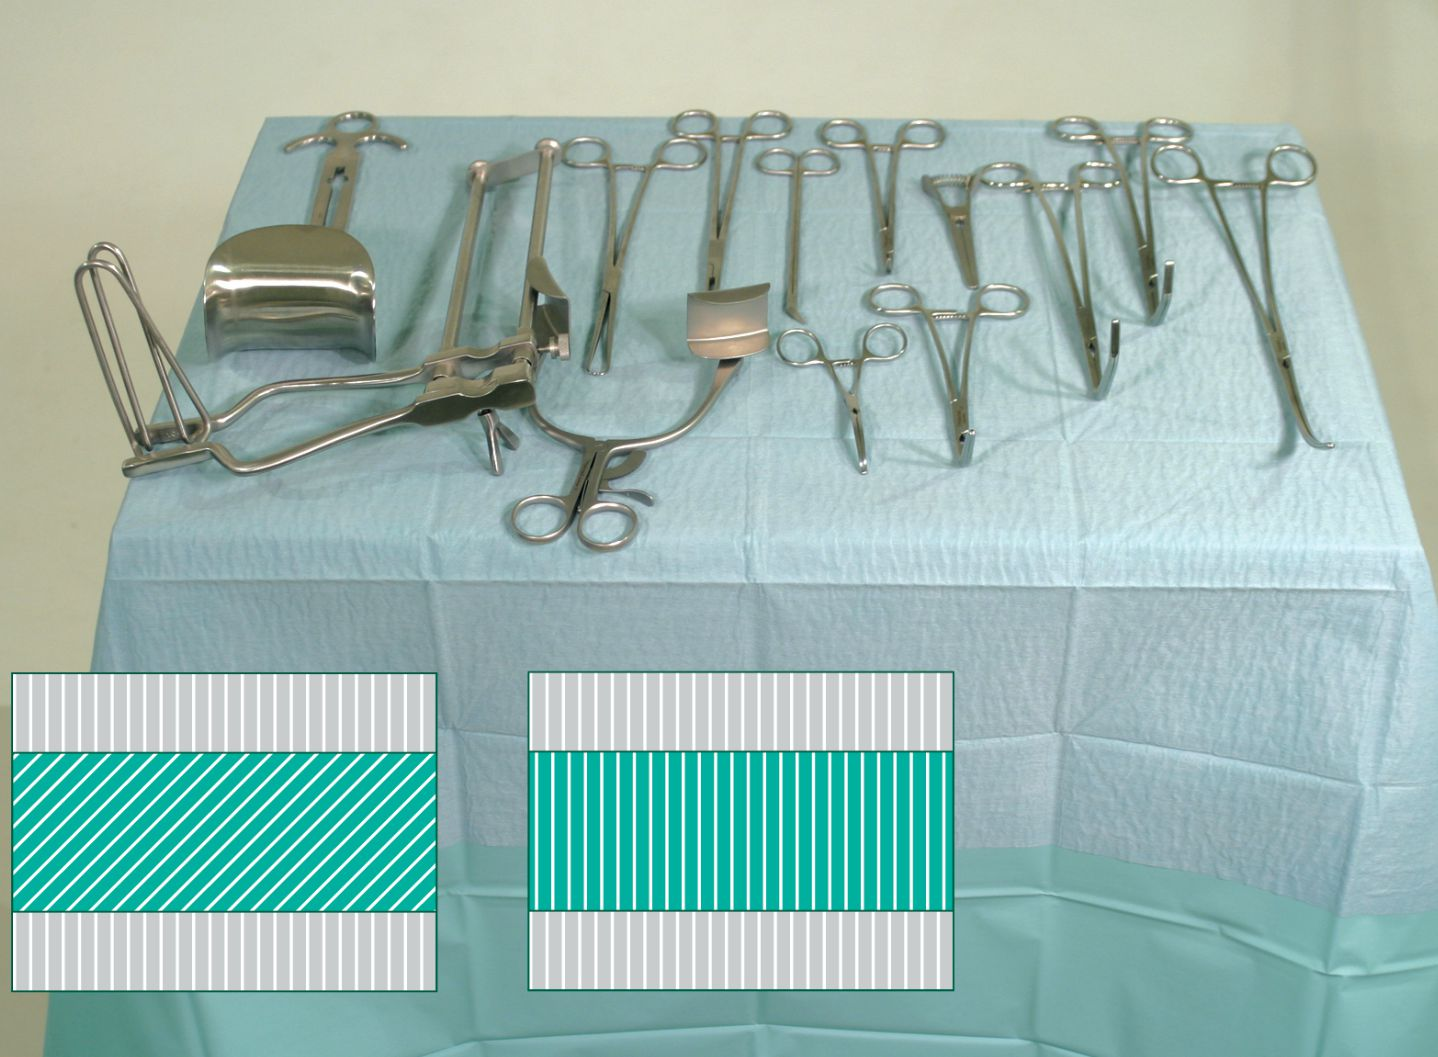 Surgical drapes & surface